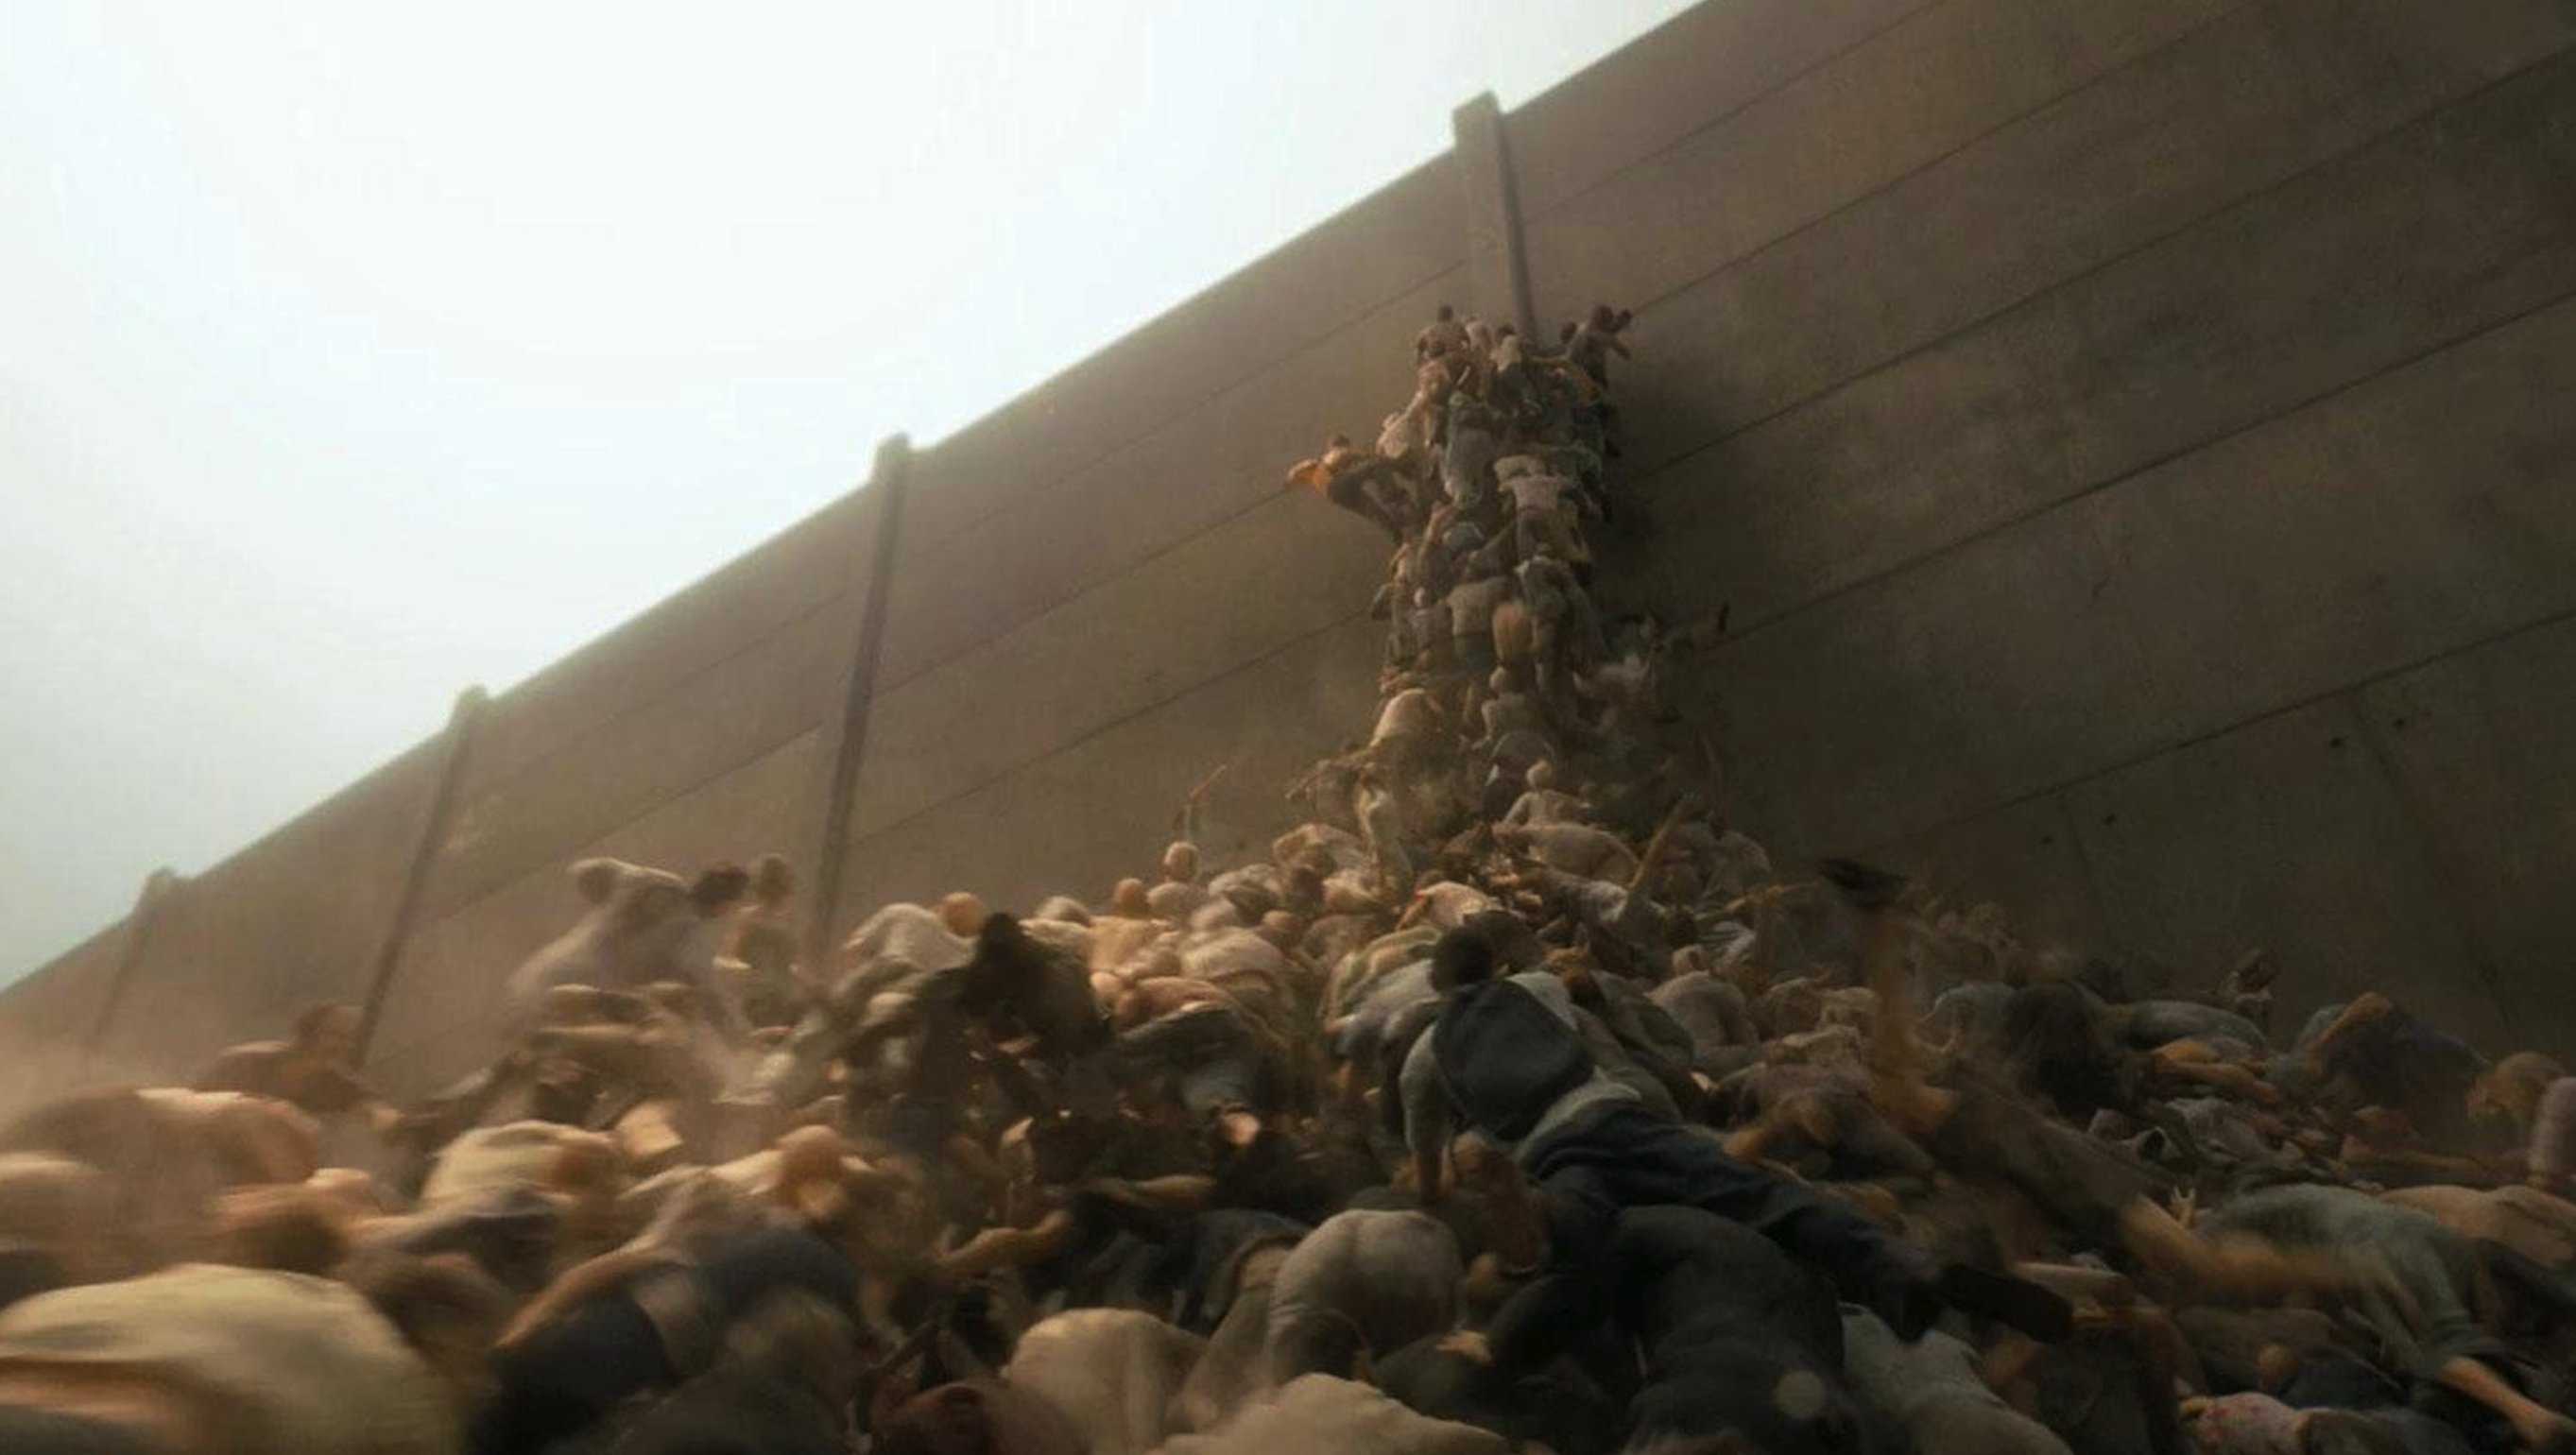 How The Zombie Represents Americas Deepest Fears Vox - What a post apocalyptic world looks like according to hollywood